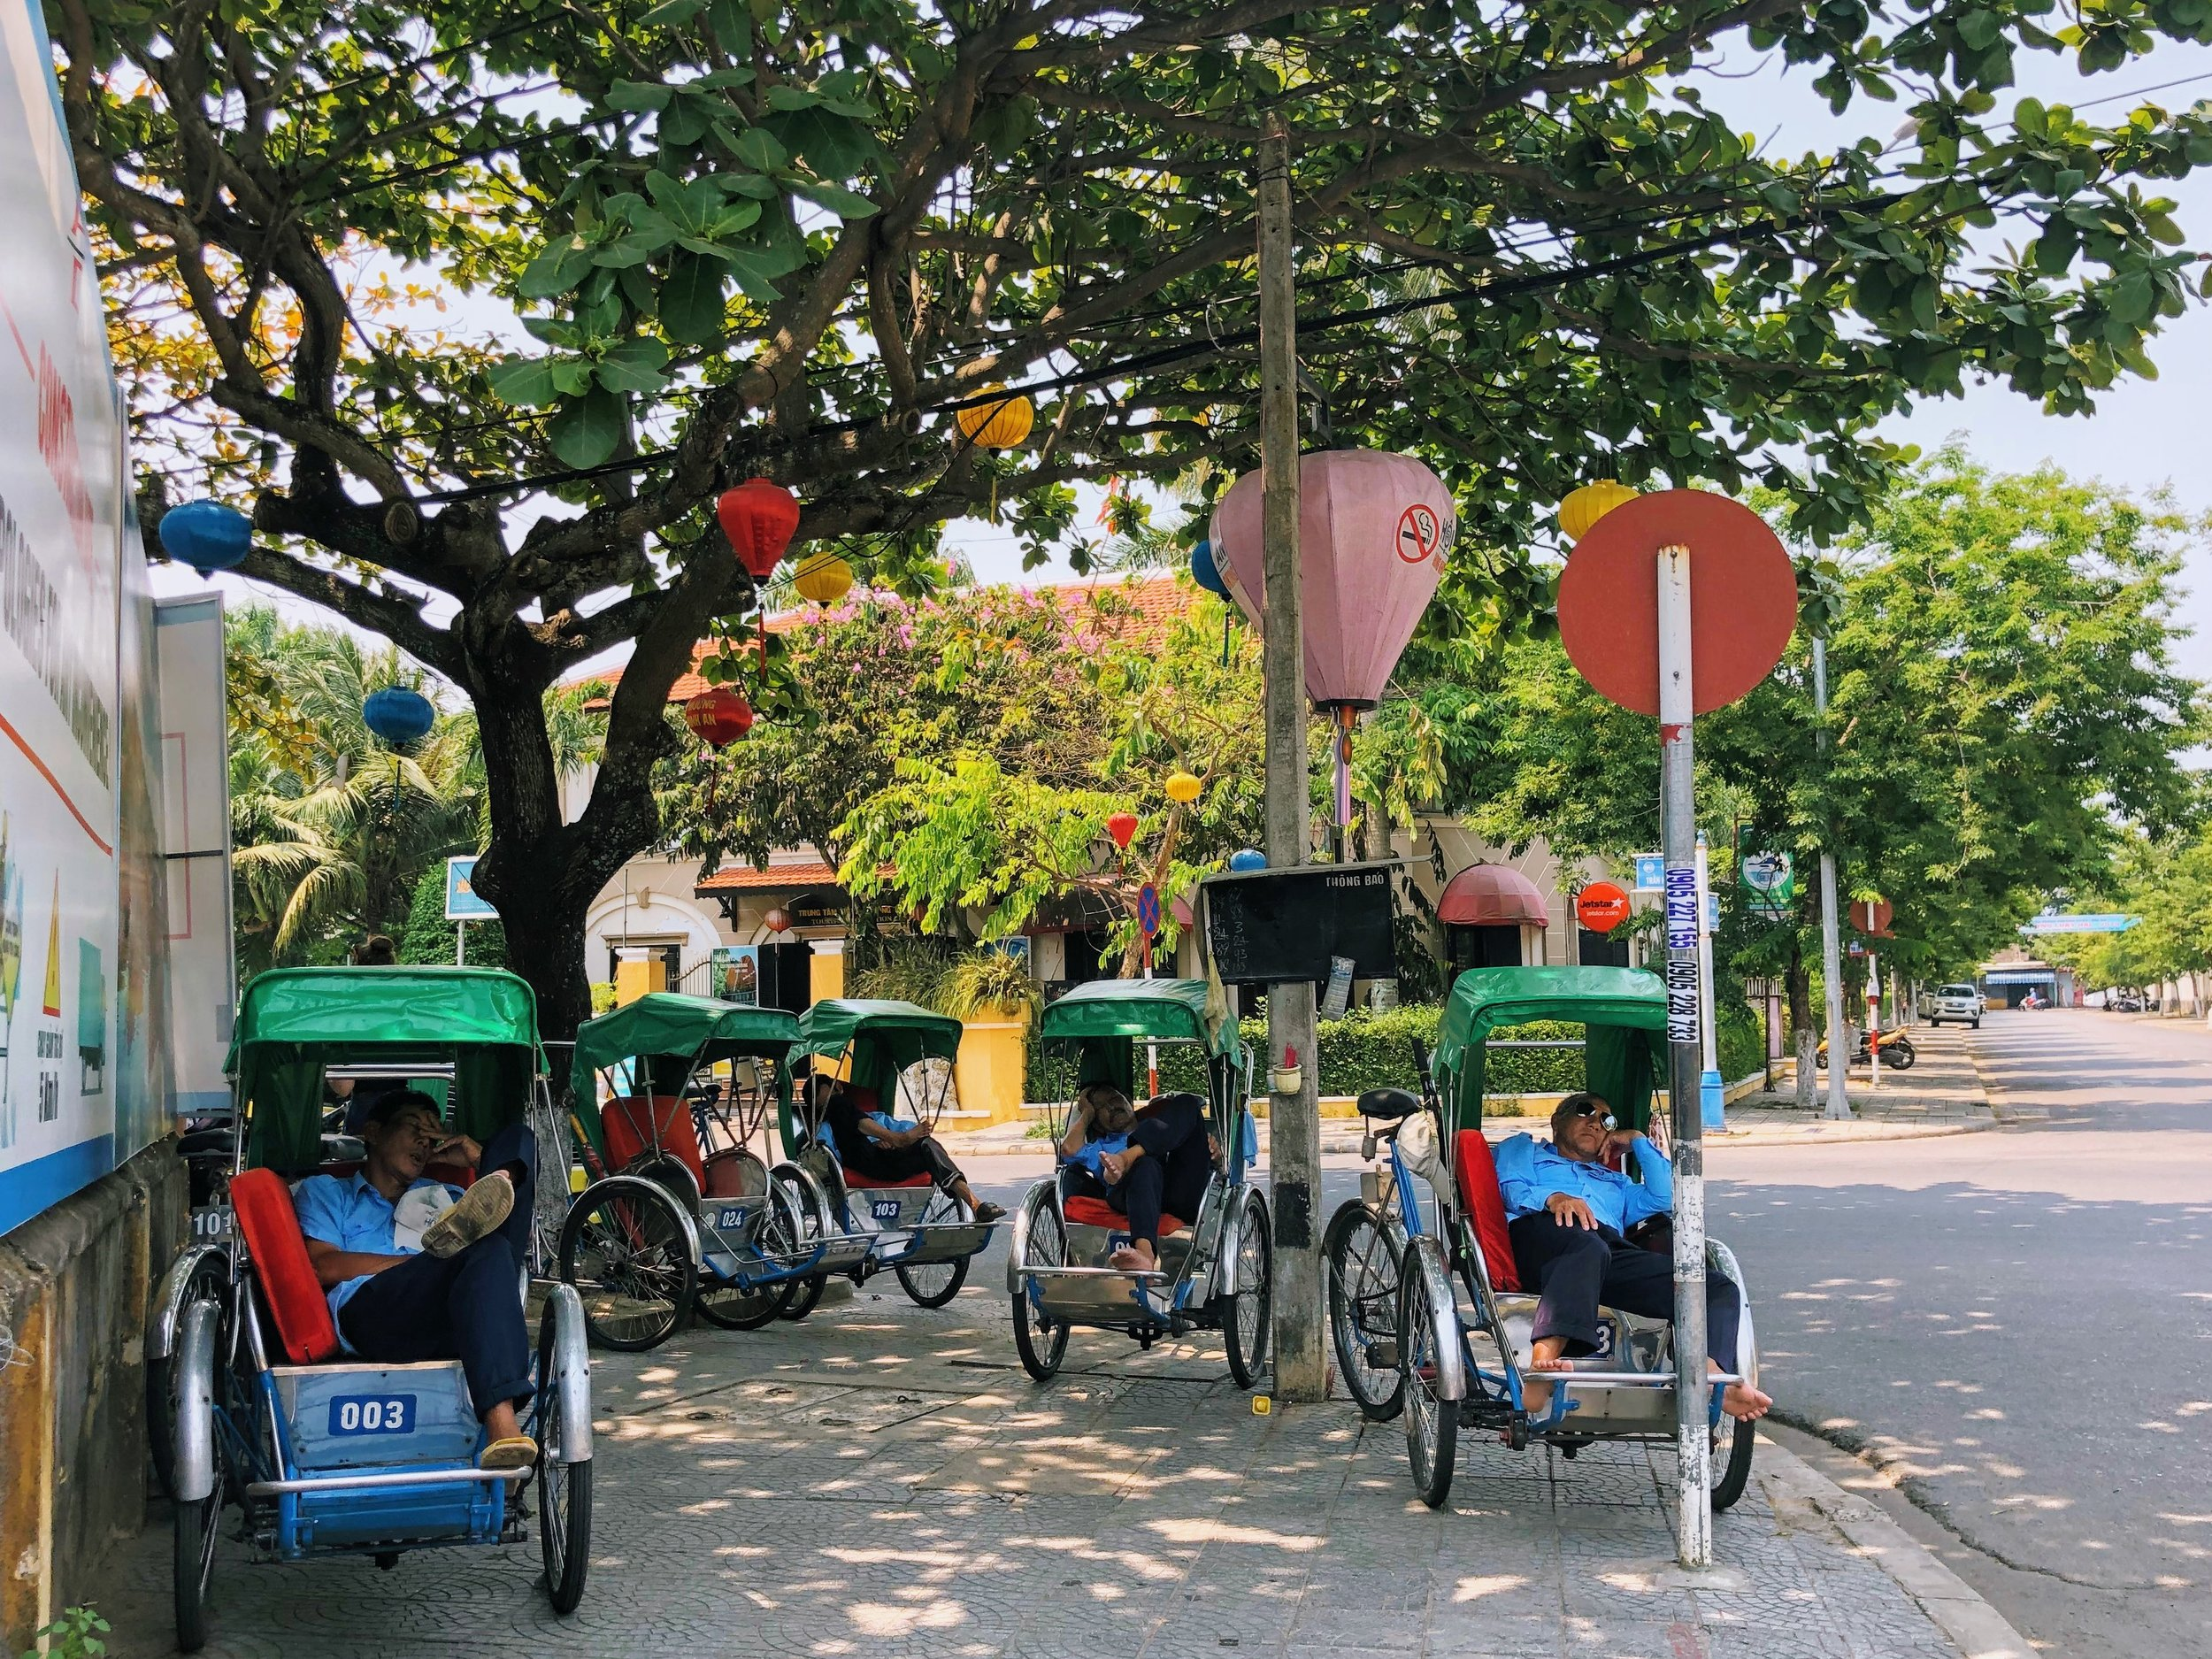 Cyclo drivers taking a siesta in the midday heat.